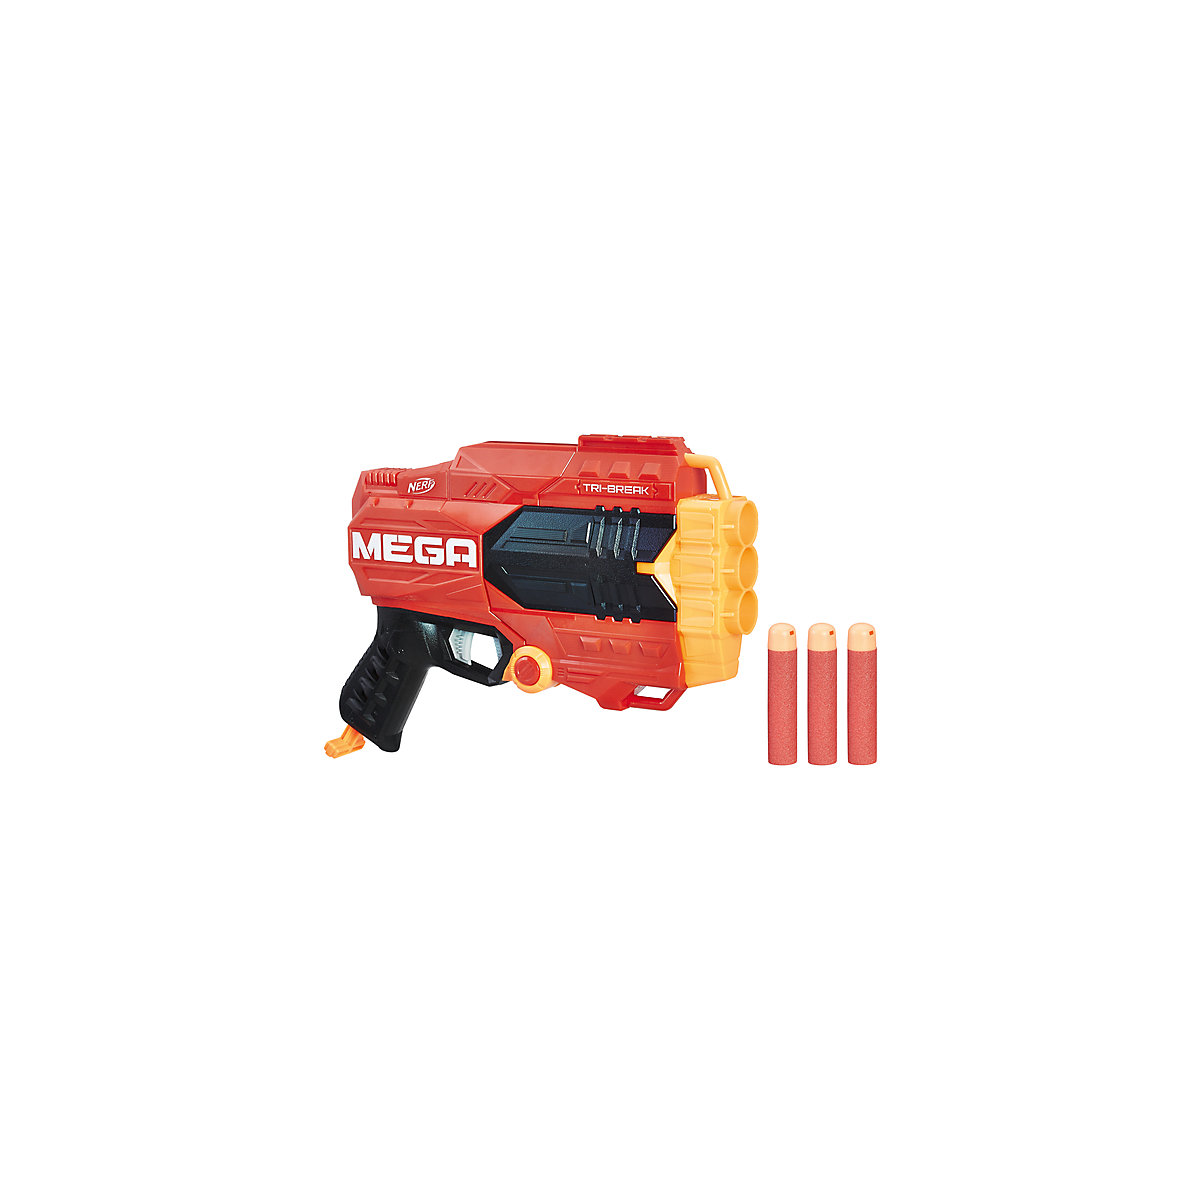 NERF Toy Guns 7922801 gun weapon toys games pneumatic blaster boy orbiz revolver Outdoor Fun Sports tactical x300 pistol gun light 500 lumens high output weapon flashlight fit 20mm picatinny weaver rail